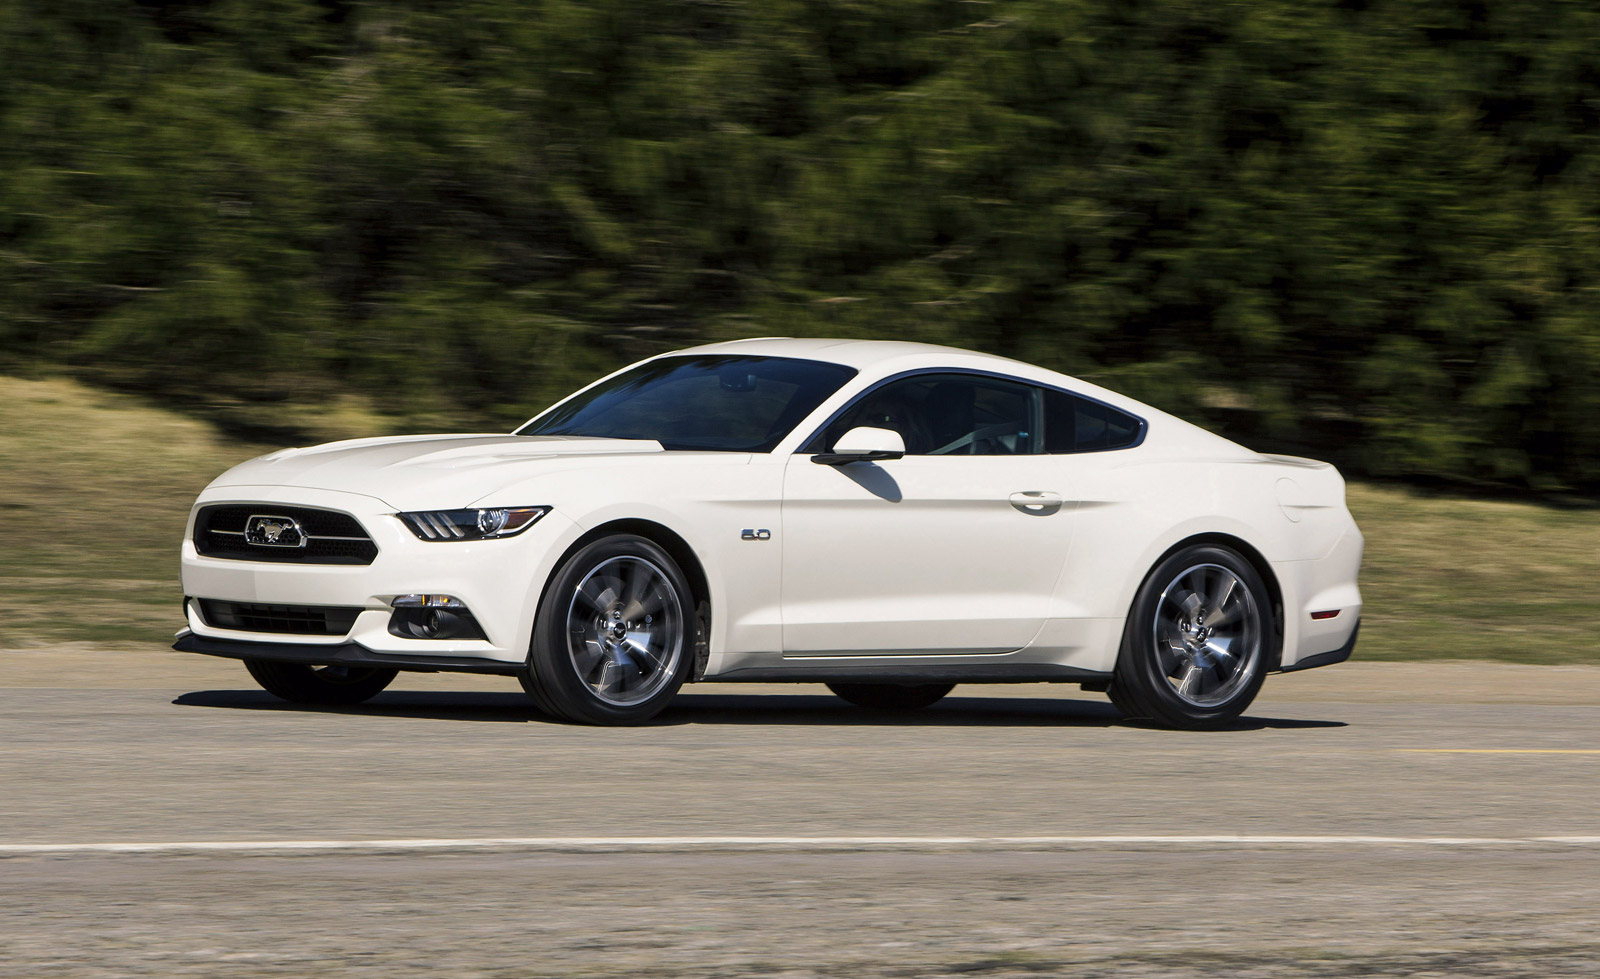 2015 Ford Mustang Gas Mileage EPA Ratings For All Models Released